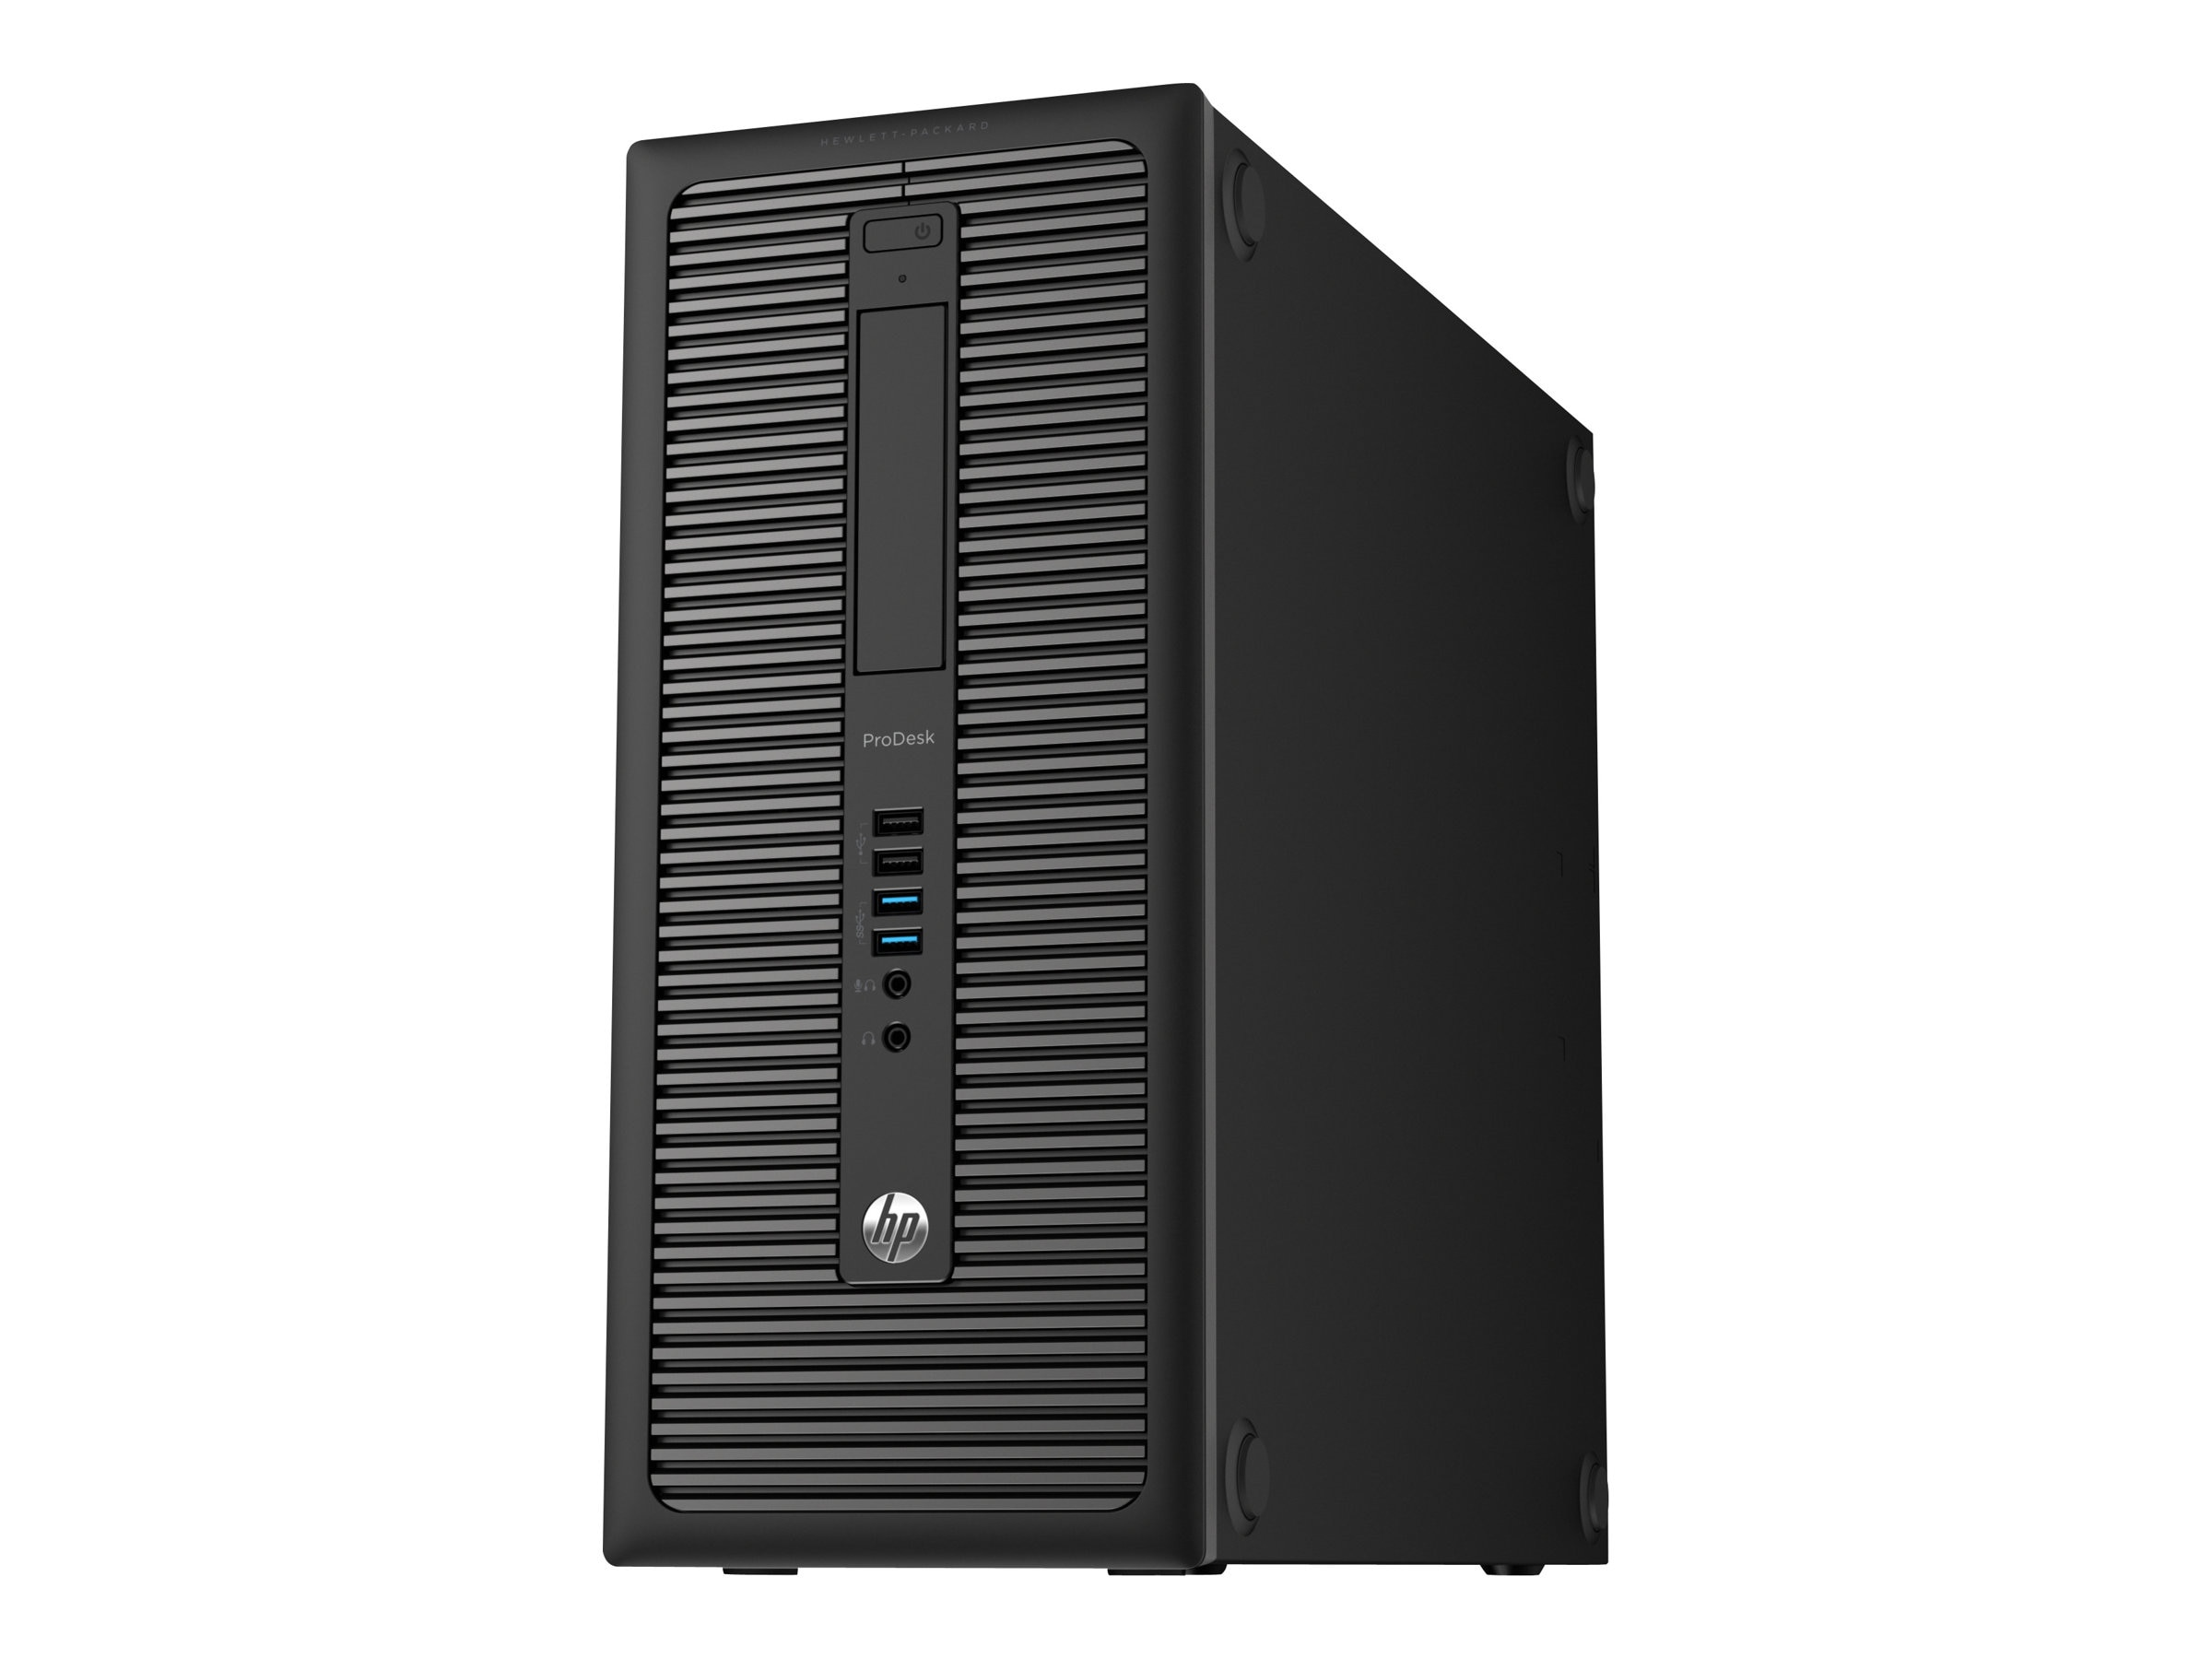 HP EliteDesk 800 Tower Core i7-4770 3.4GHz 8GB 256GB